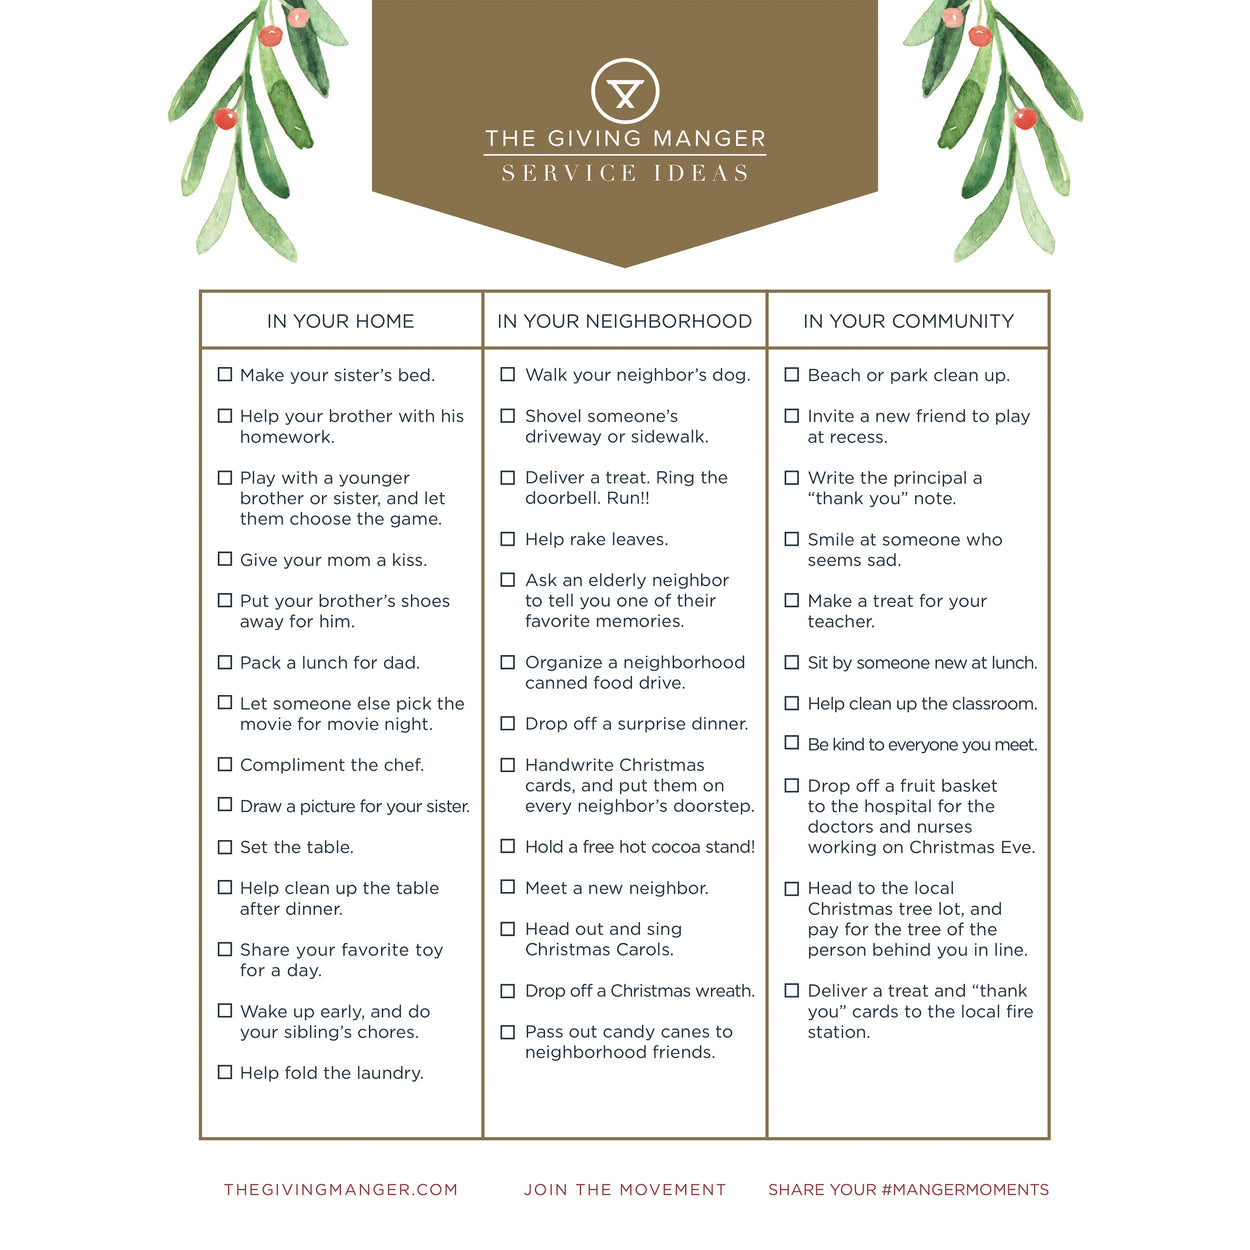 Service Ideas for Home, Neighborhood and Community - Free Printable